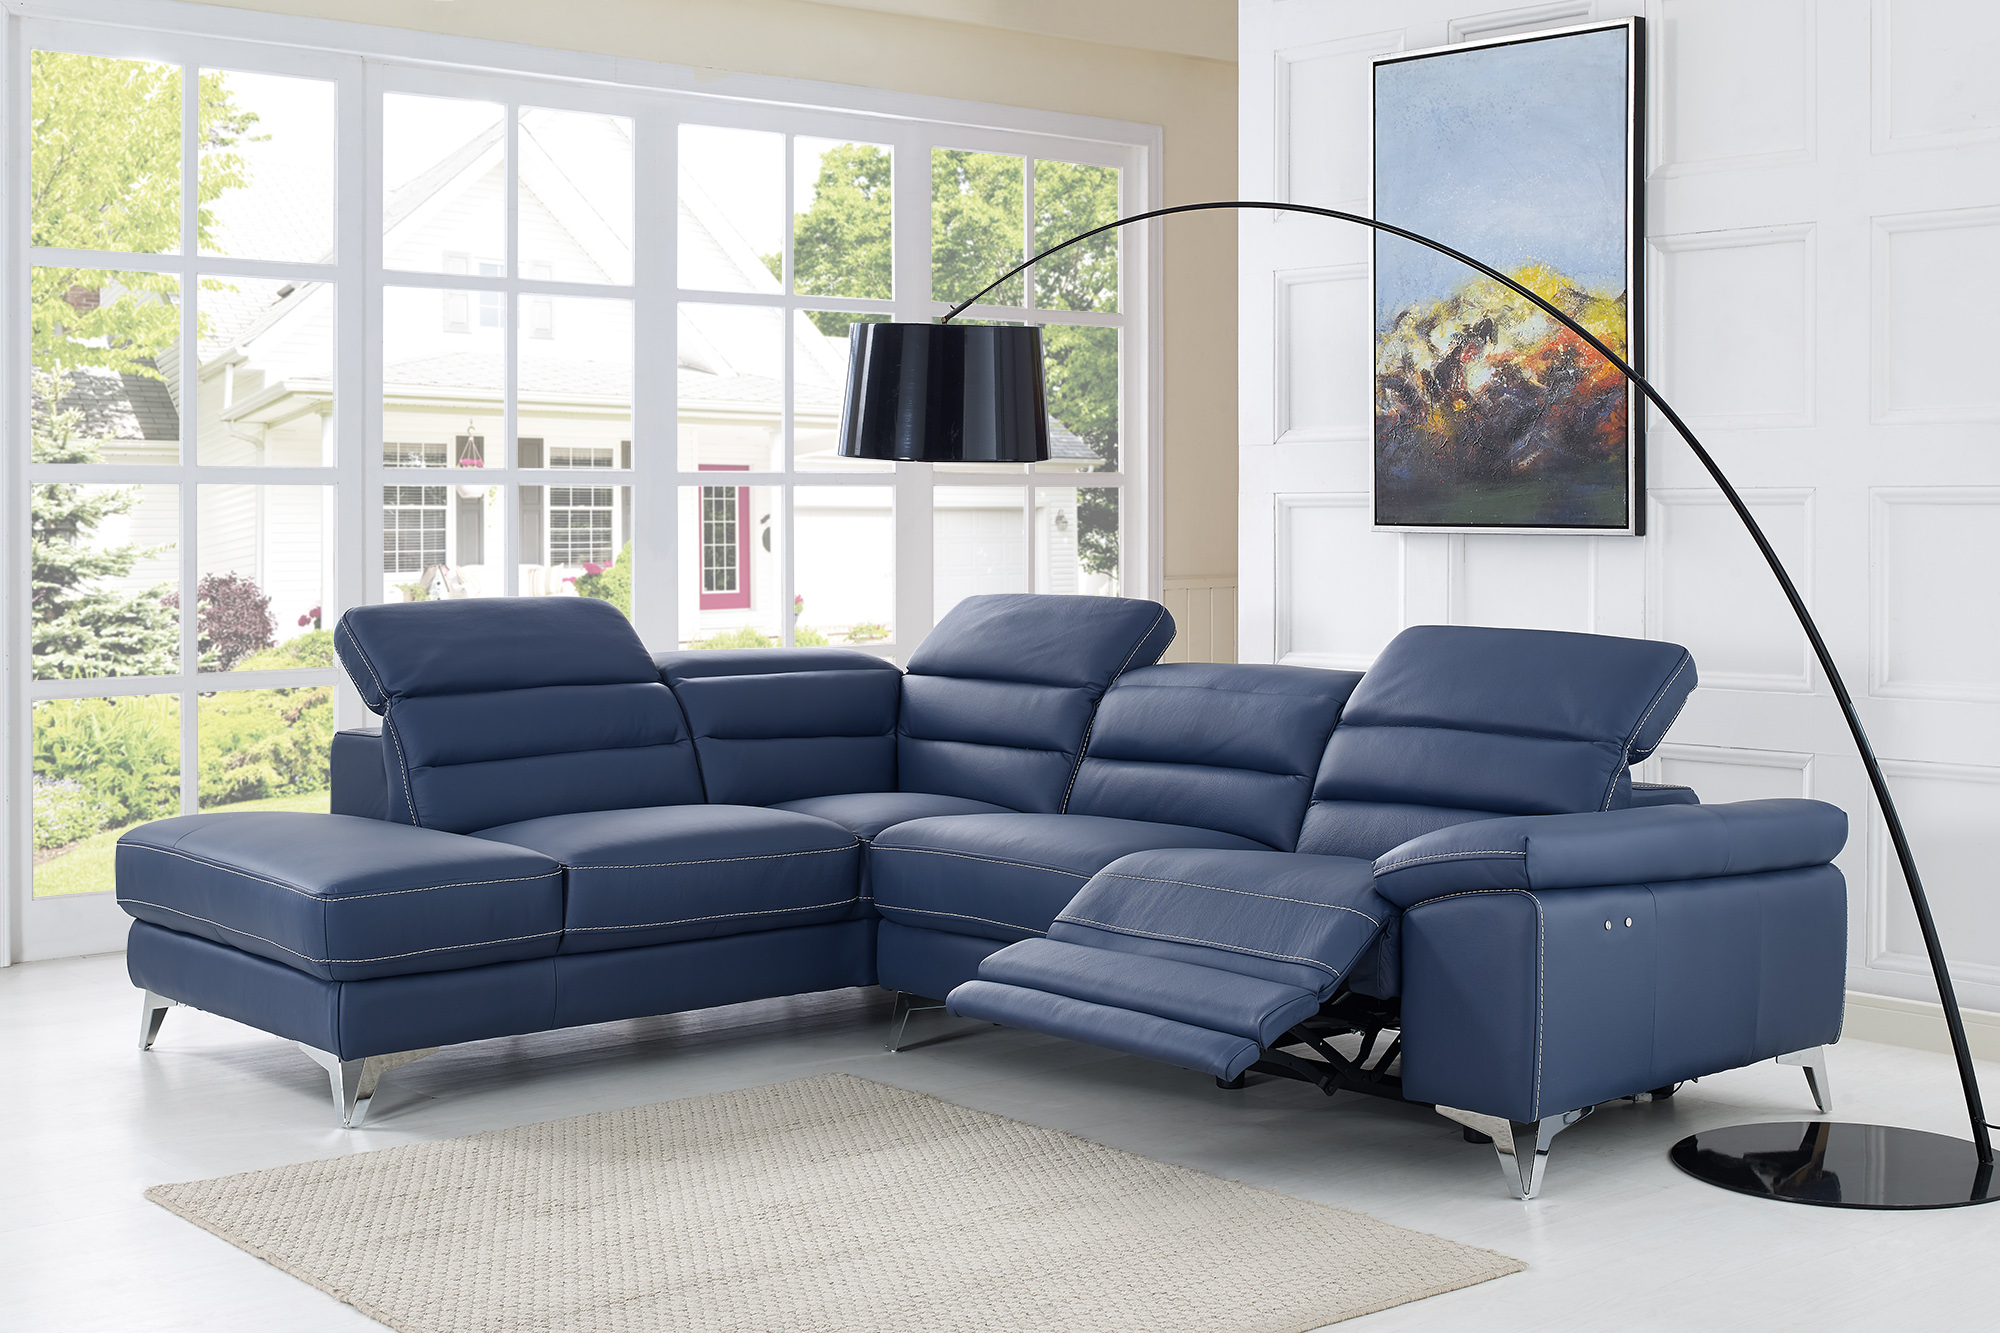 Sleek Leather Couch Two Tone Contemporary Style Sleek Quality Full Leather